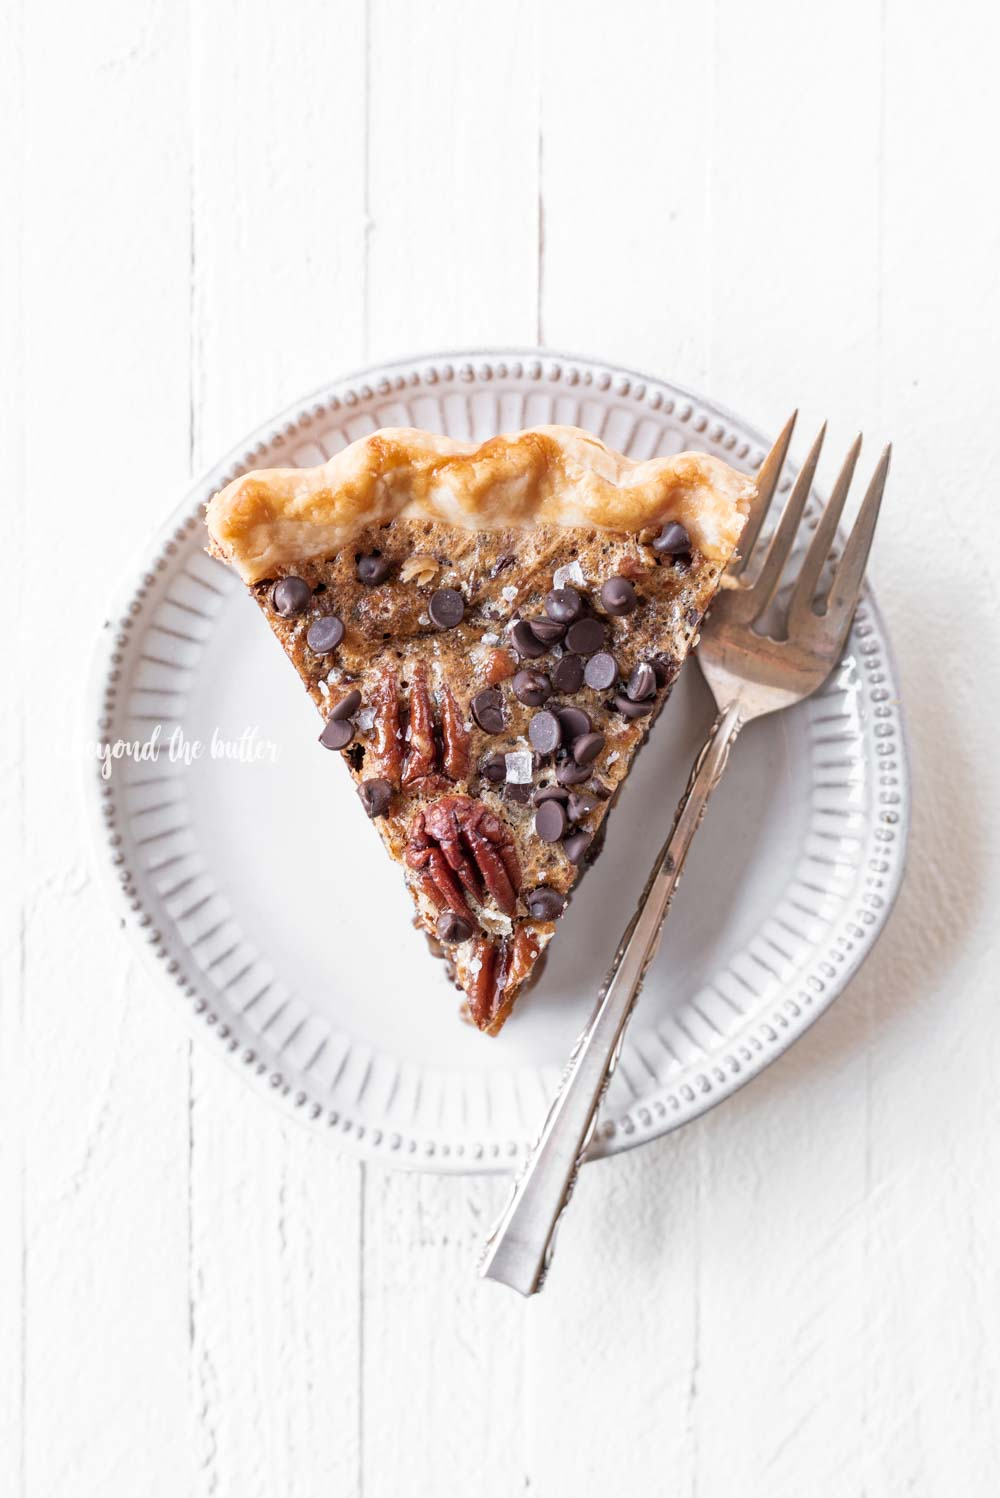 Easy Chocolate Pecan Pie recipe | All Images © Beyond the Butter, LLC